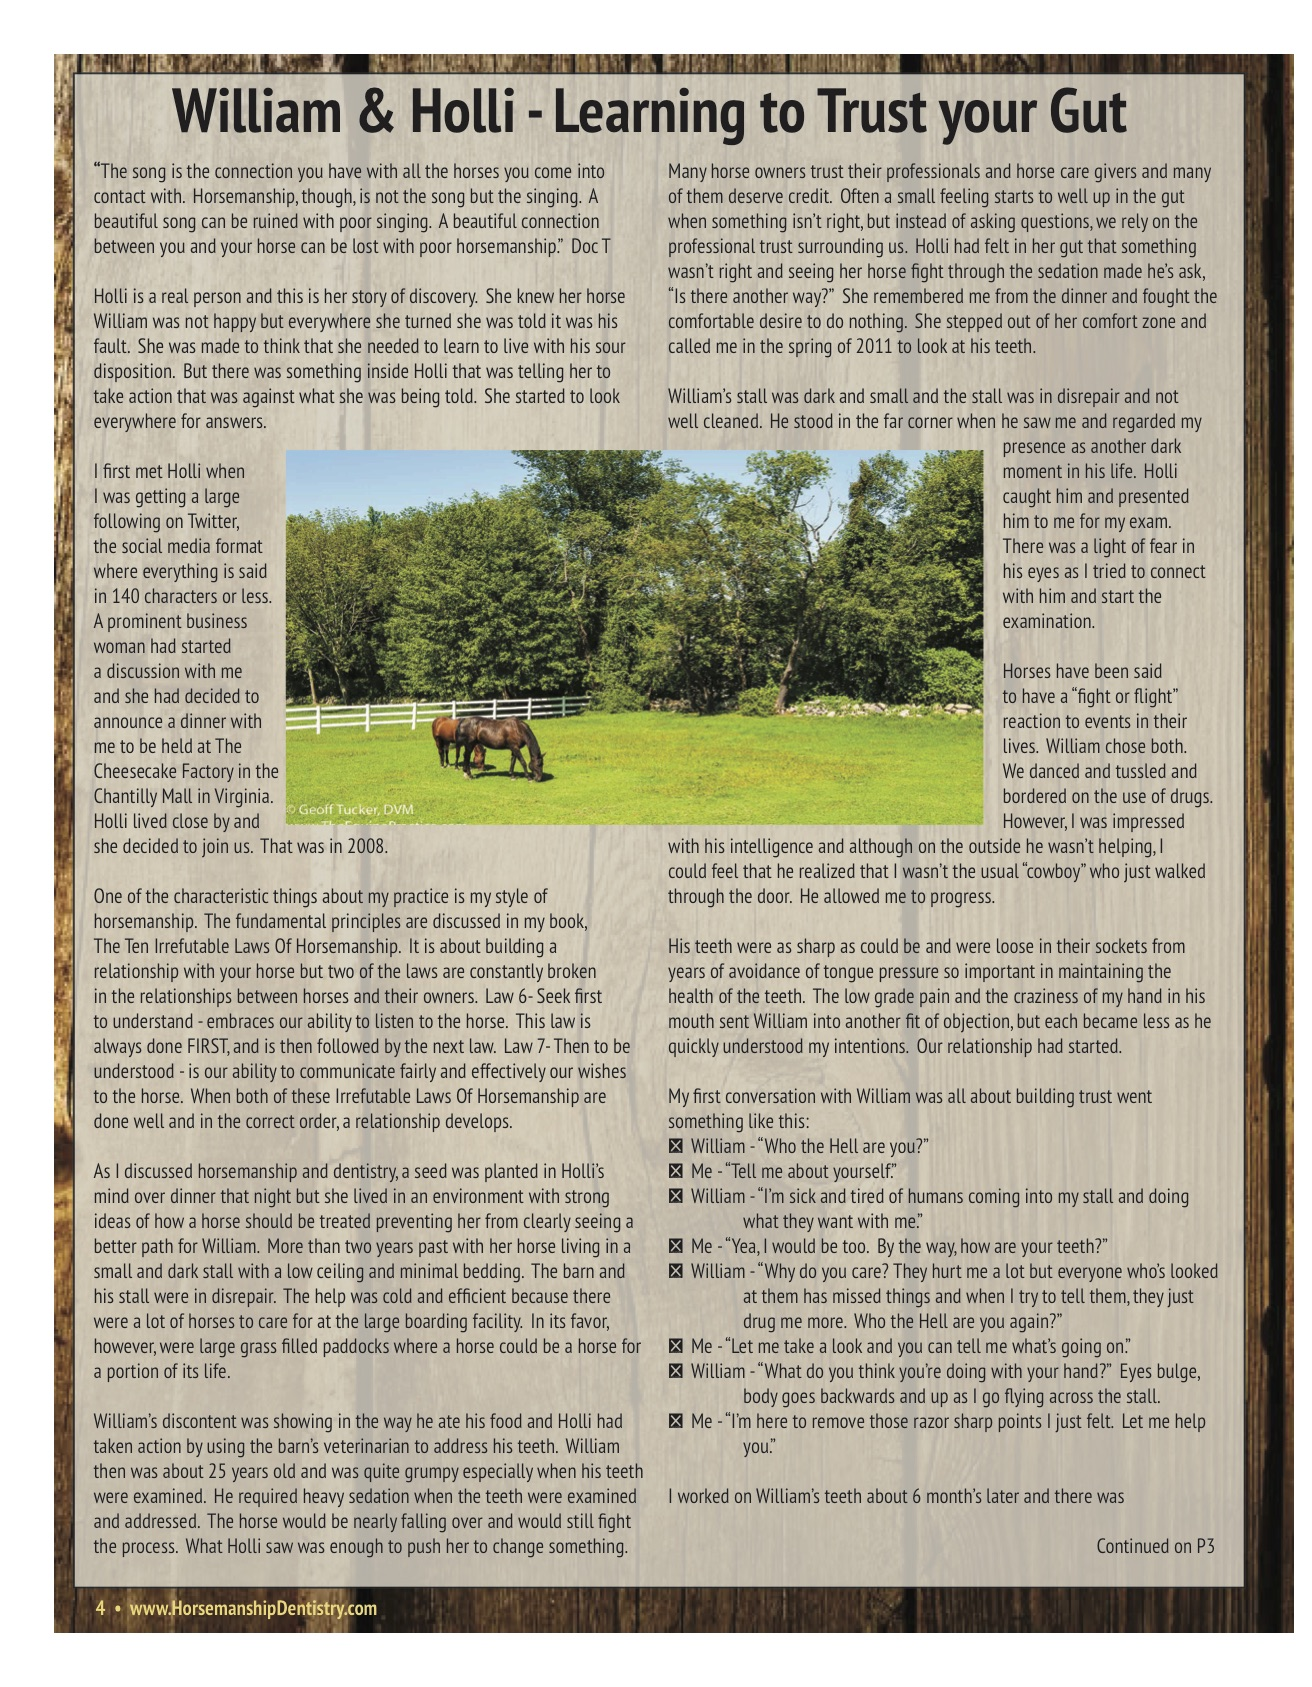 The Equine Practice Rounds™ Vol 1 Issue 1 page 4 of 4